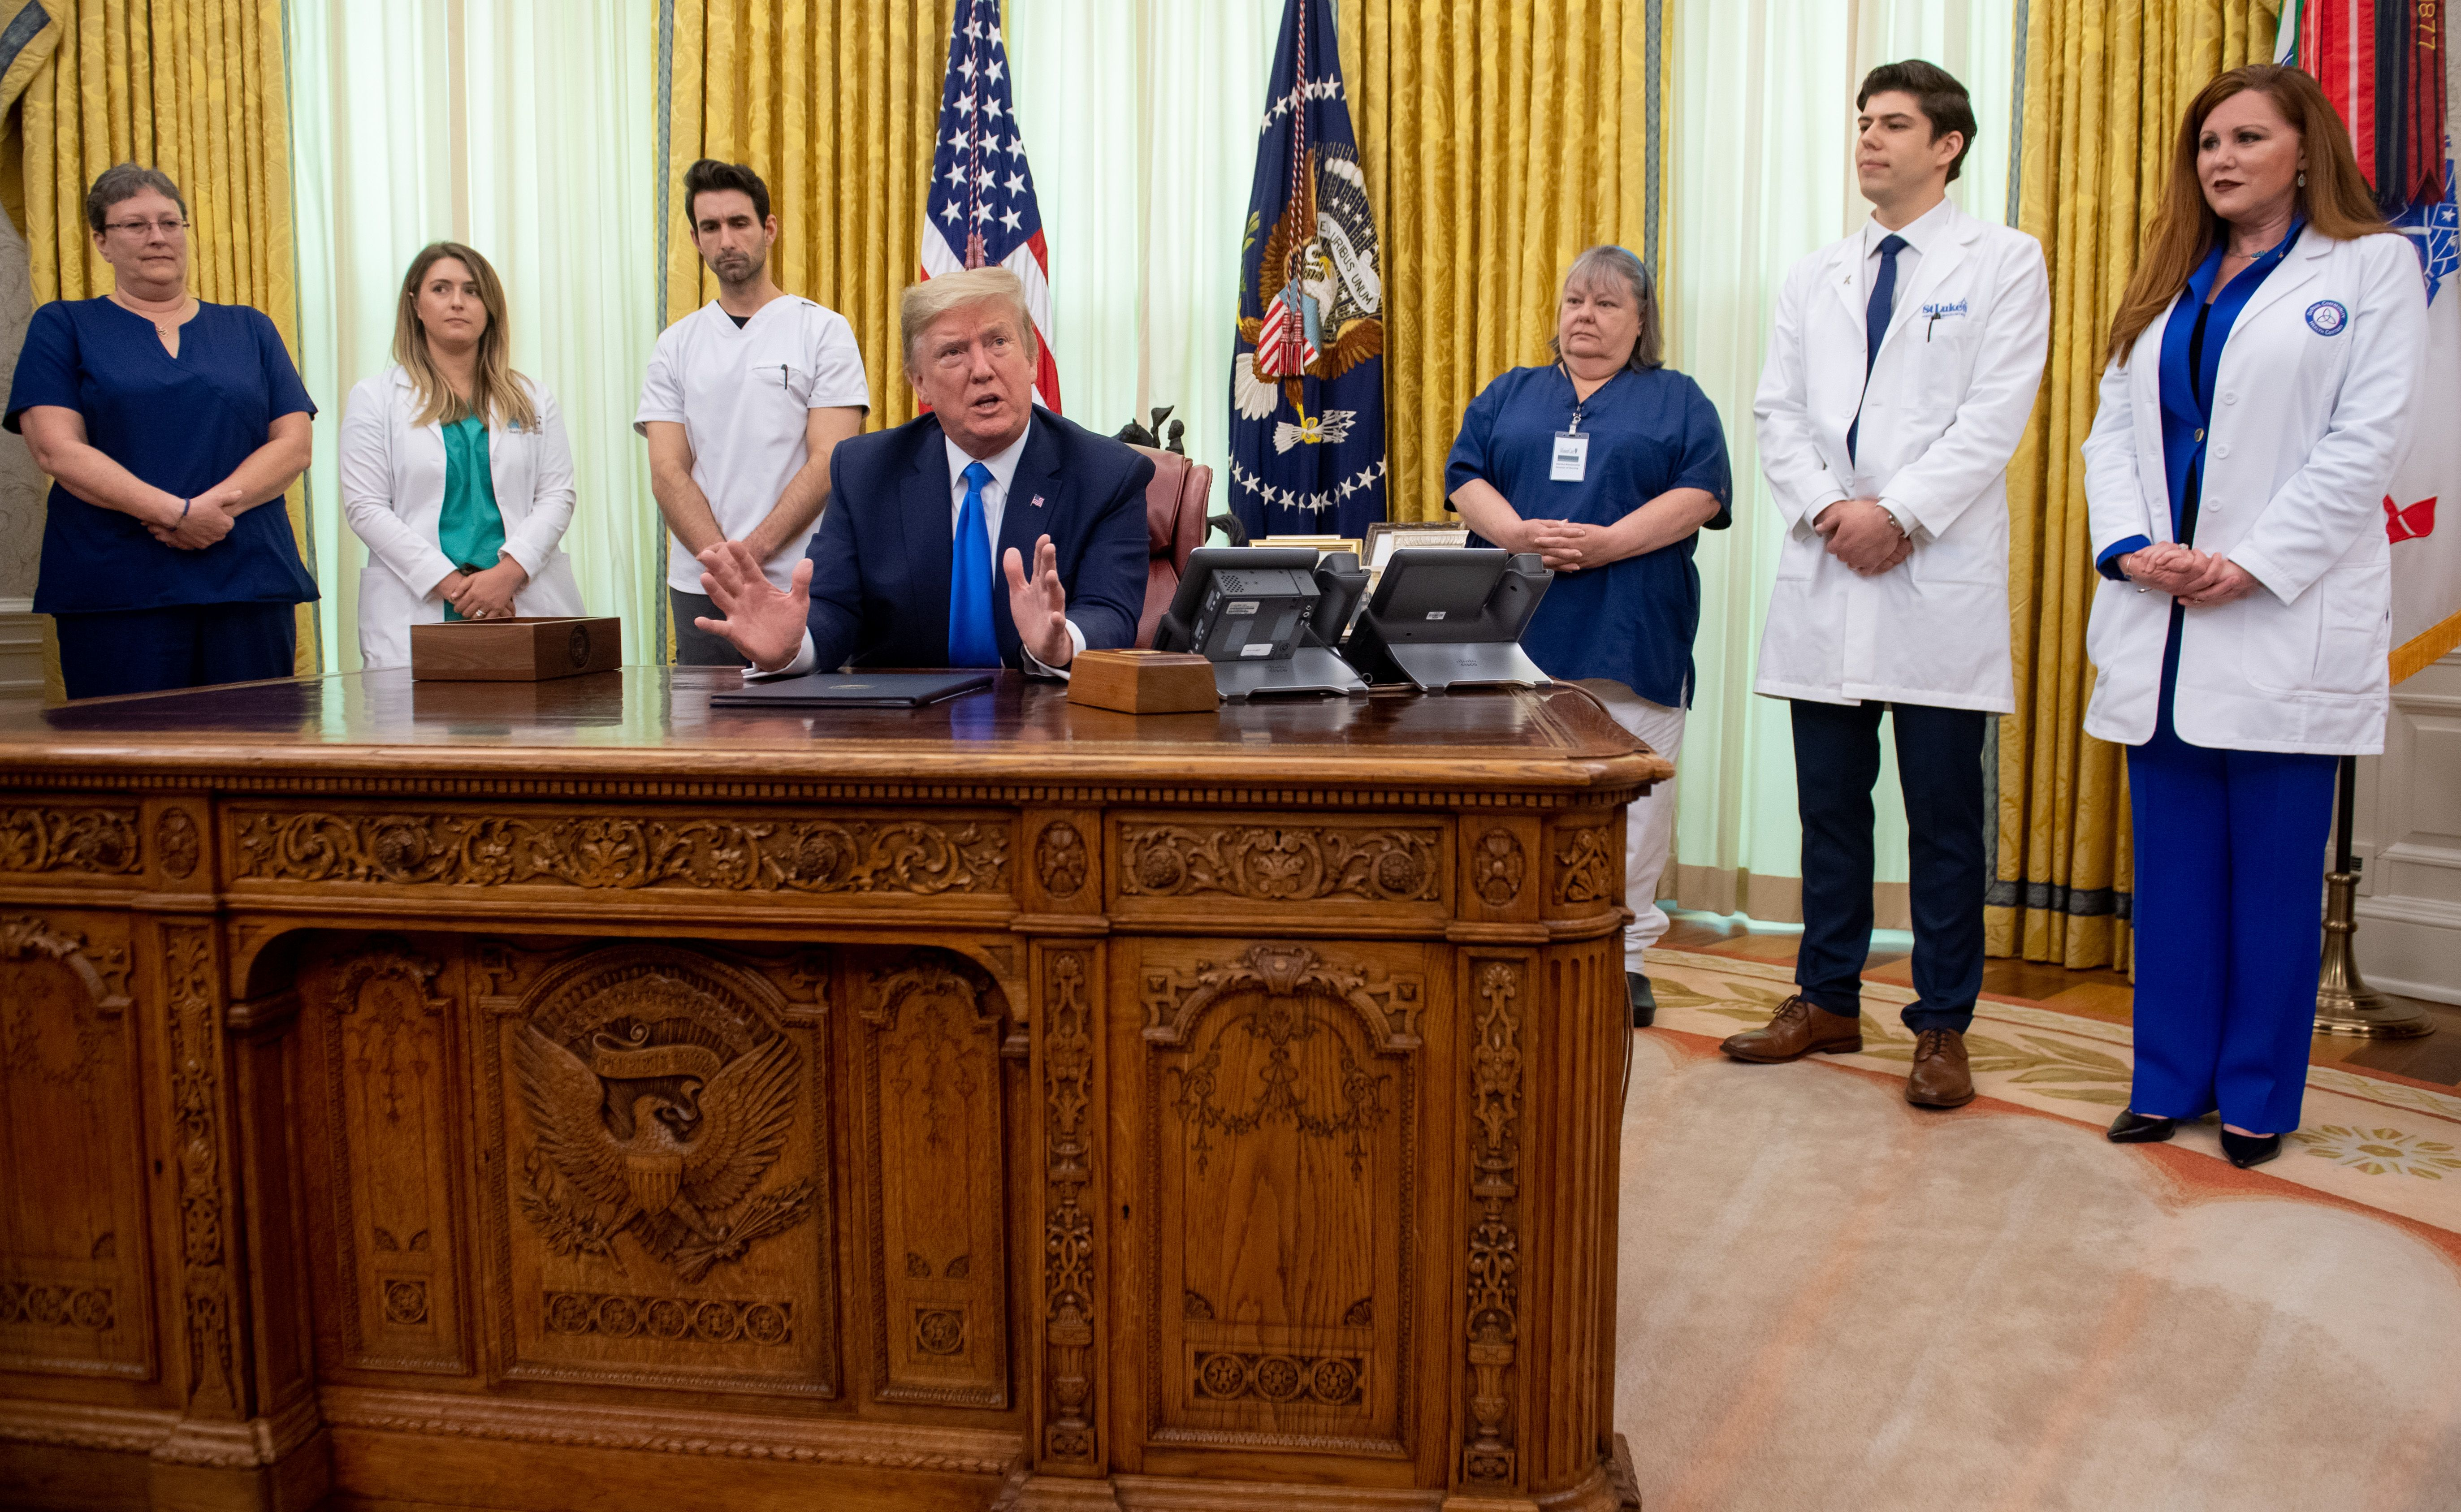 President Donald Trump, flanked by nurses, speaks at the White House on May 6 after signing a proclamation in honor of National Nurses Day.